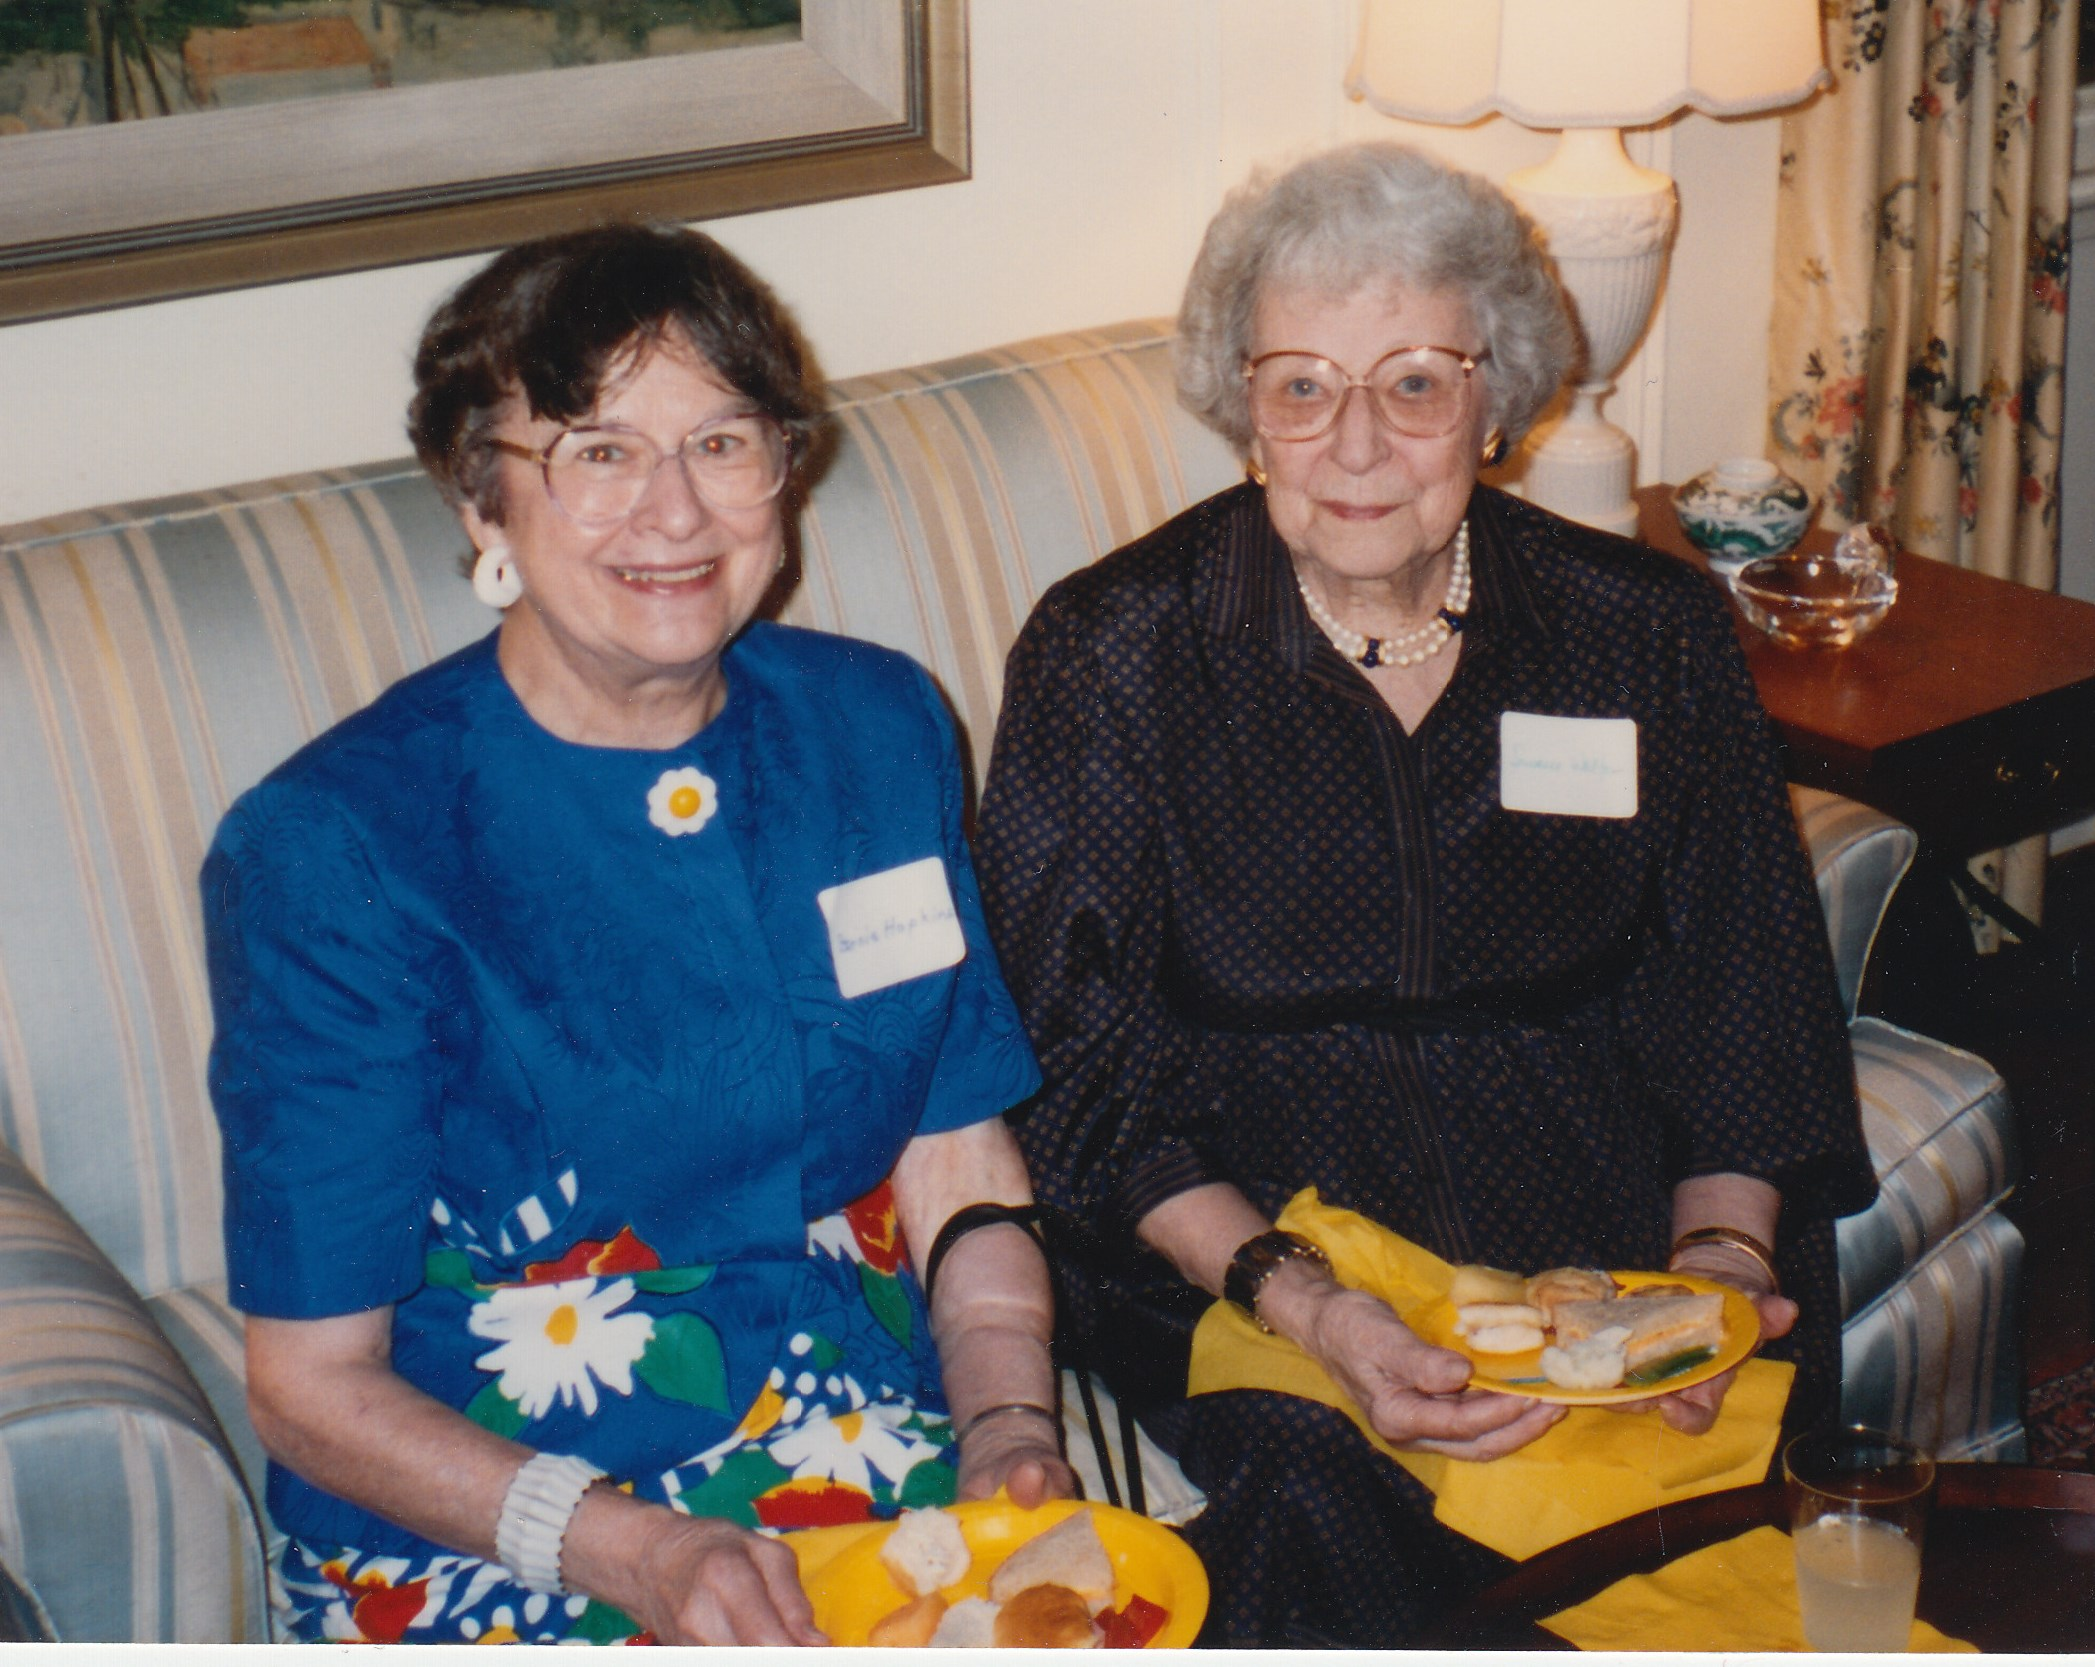 photo of two members at fellowship event with food